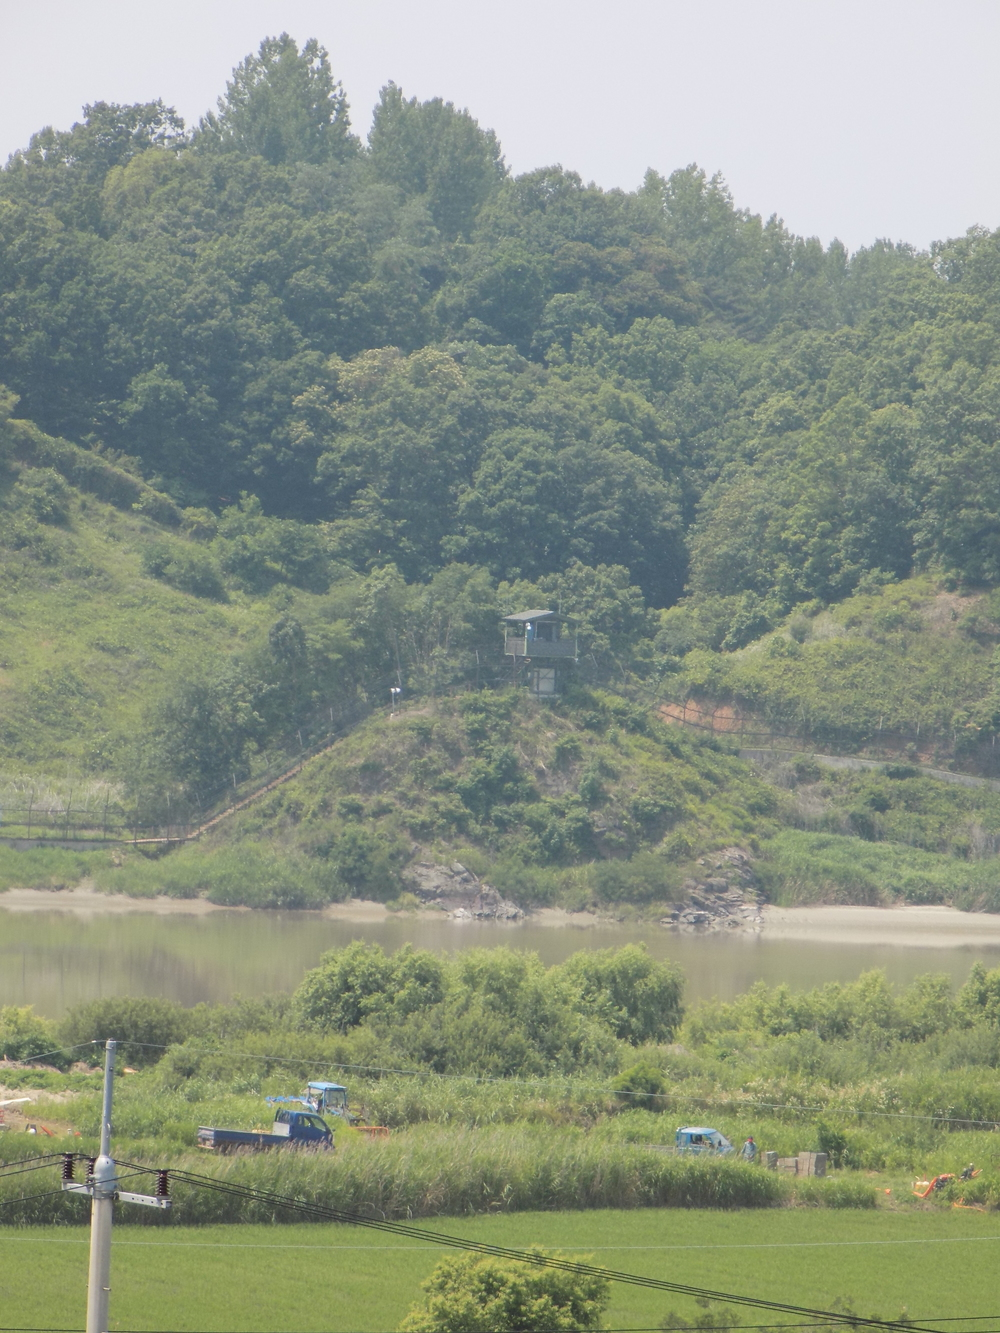 South Korean guard shack at the demarcation zone